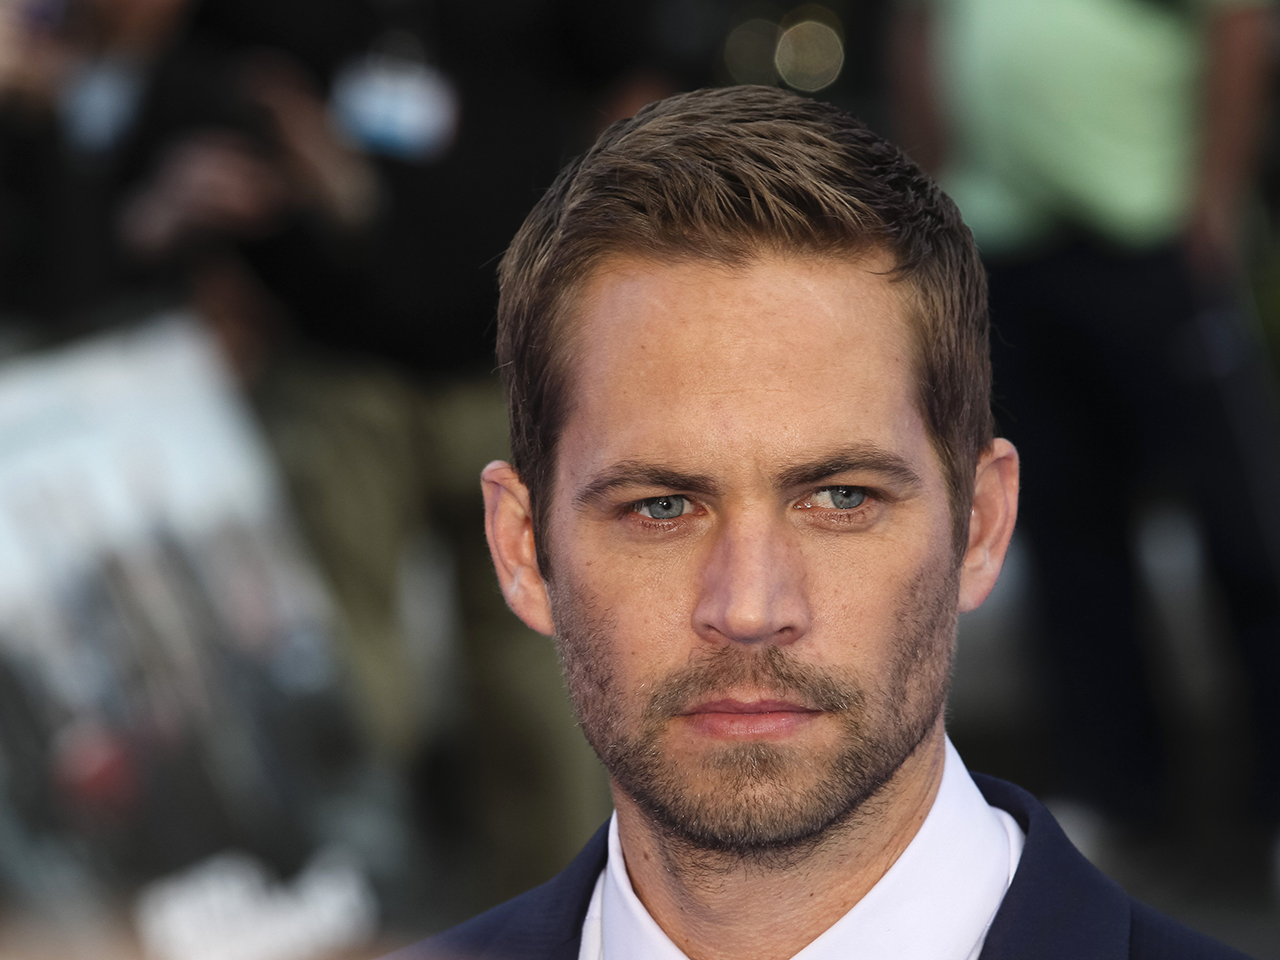 Nov. 30, 2013 - File - PAUL WALKER, an actor perhaps best known for his roles in the 'Fast and Furious' films died in a fiery car crash. He was 40 yea...